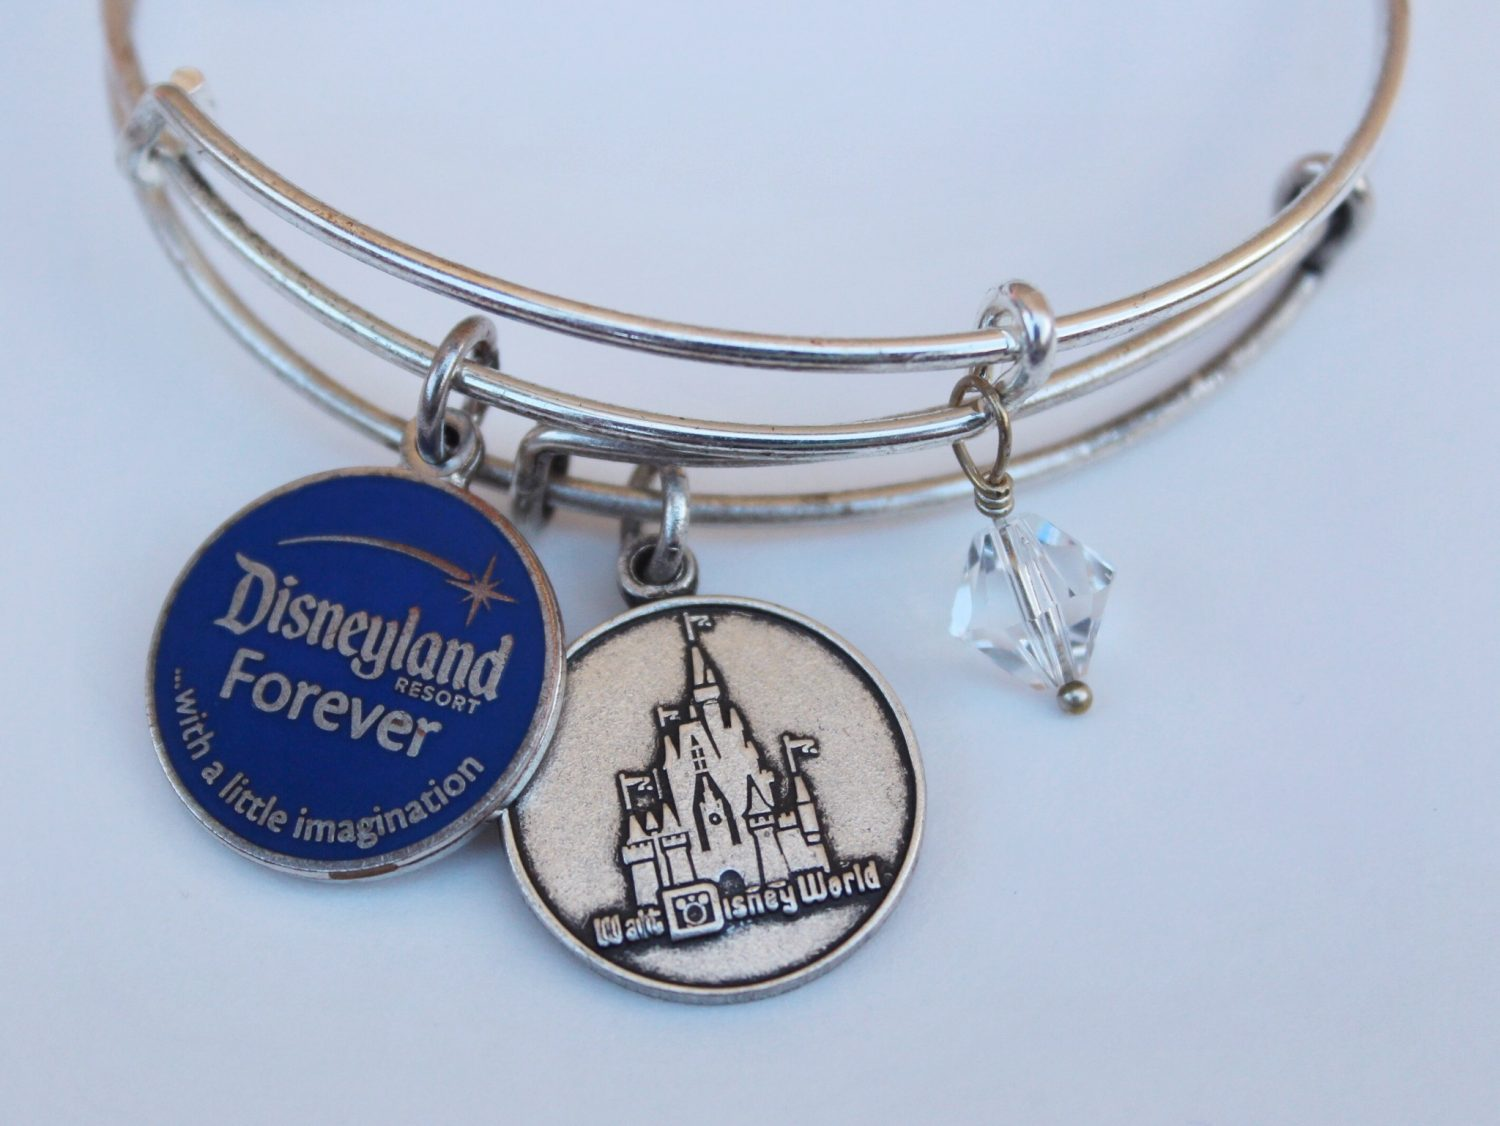 Disneyland Forever Alex and Ani Bracelet